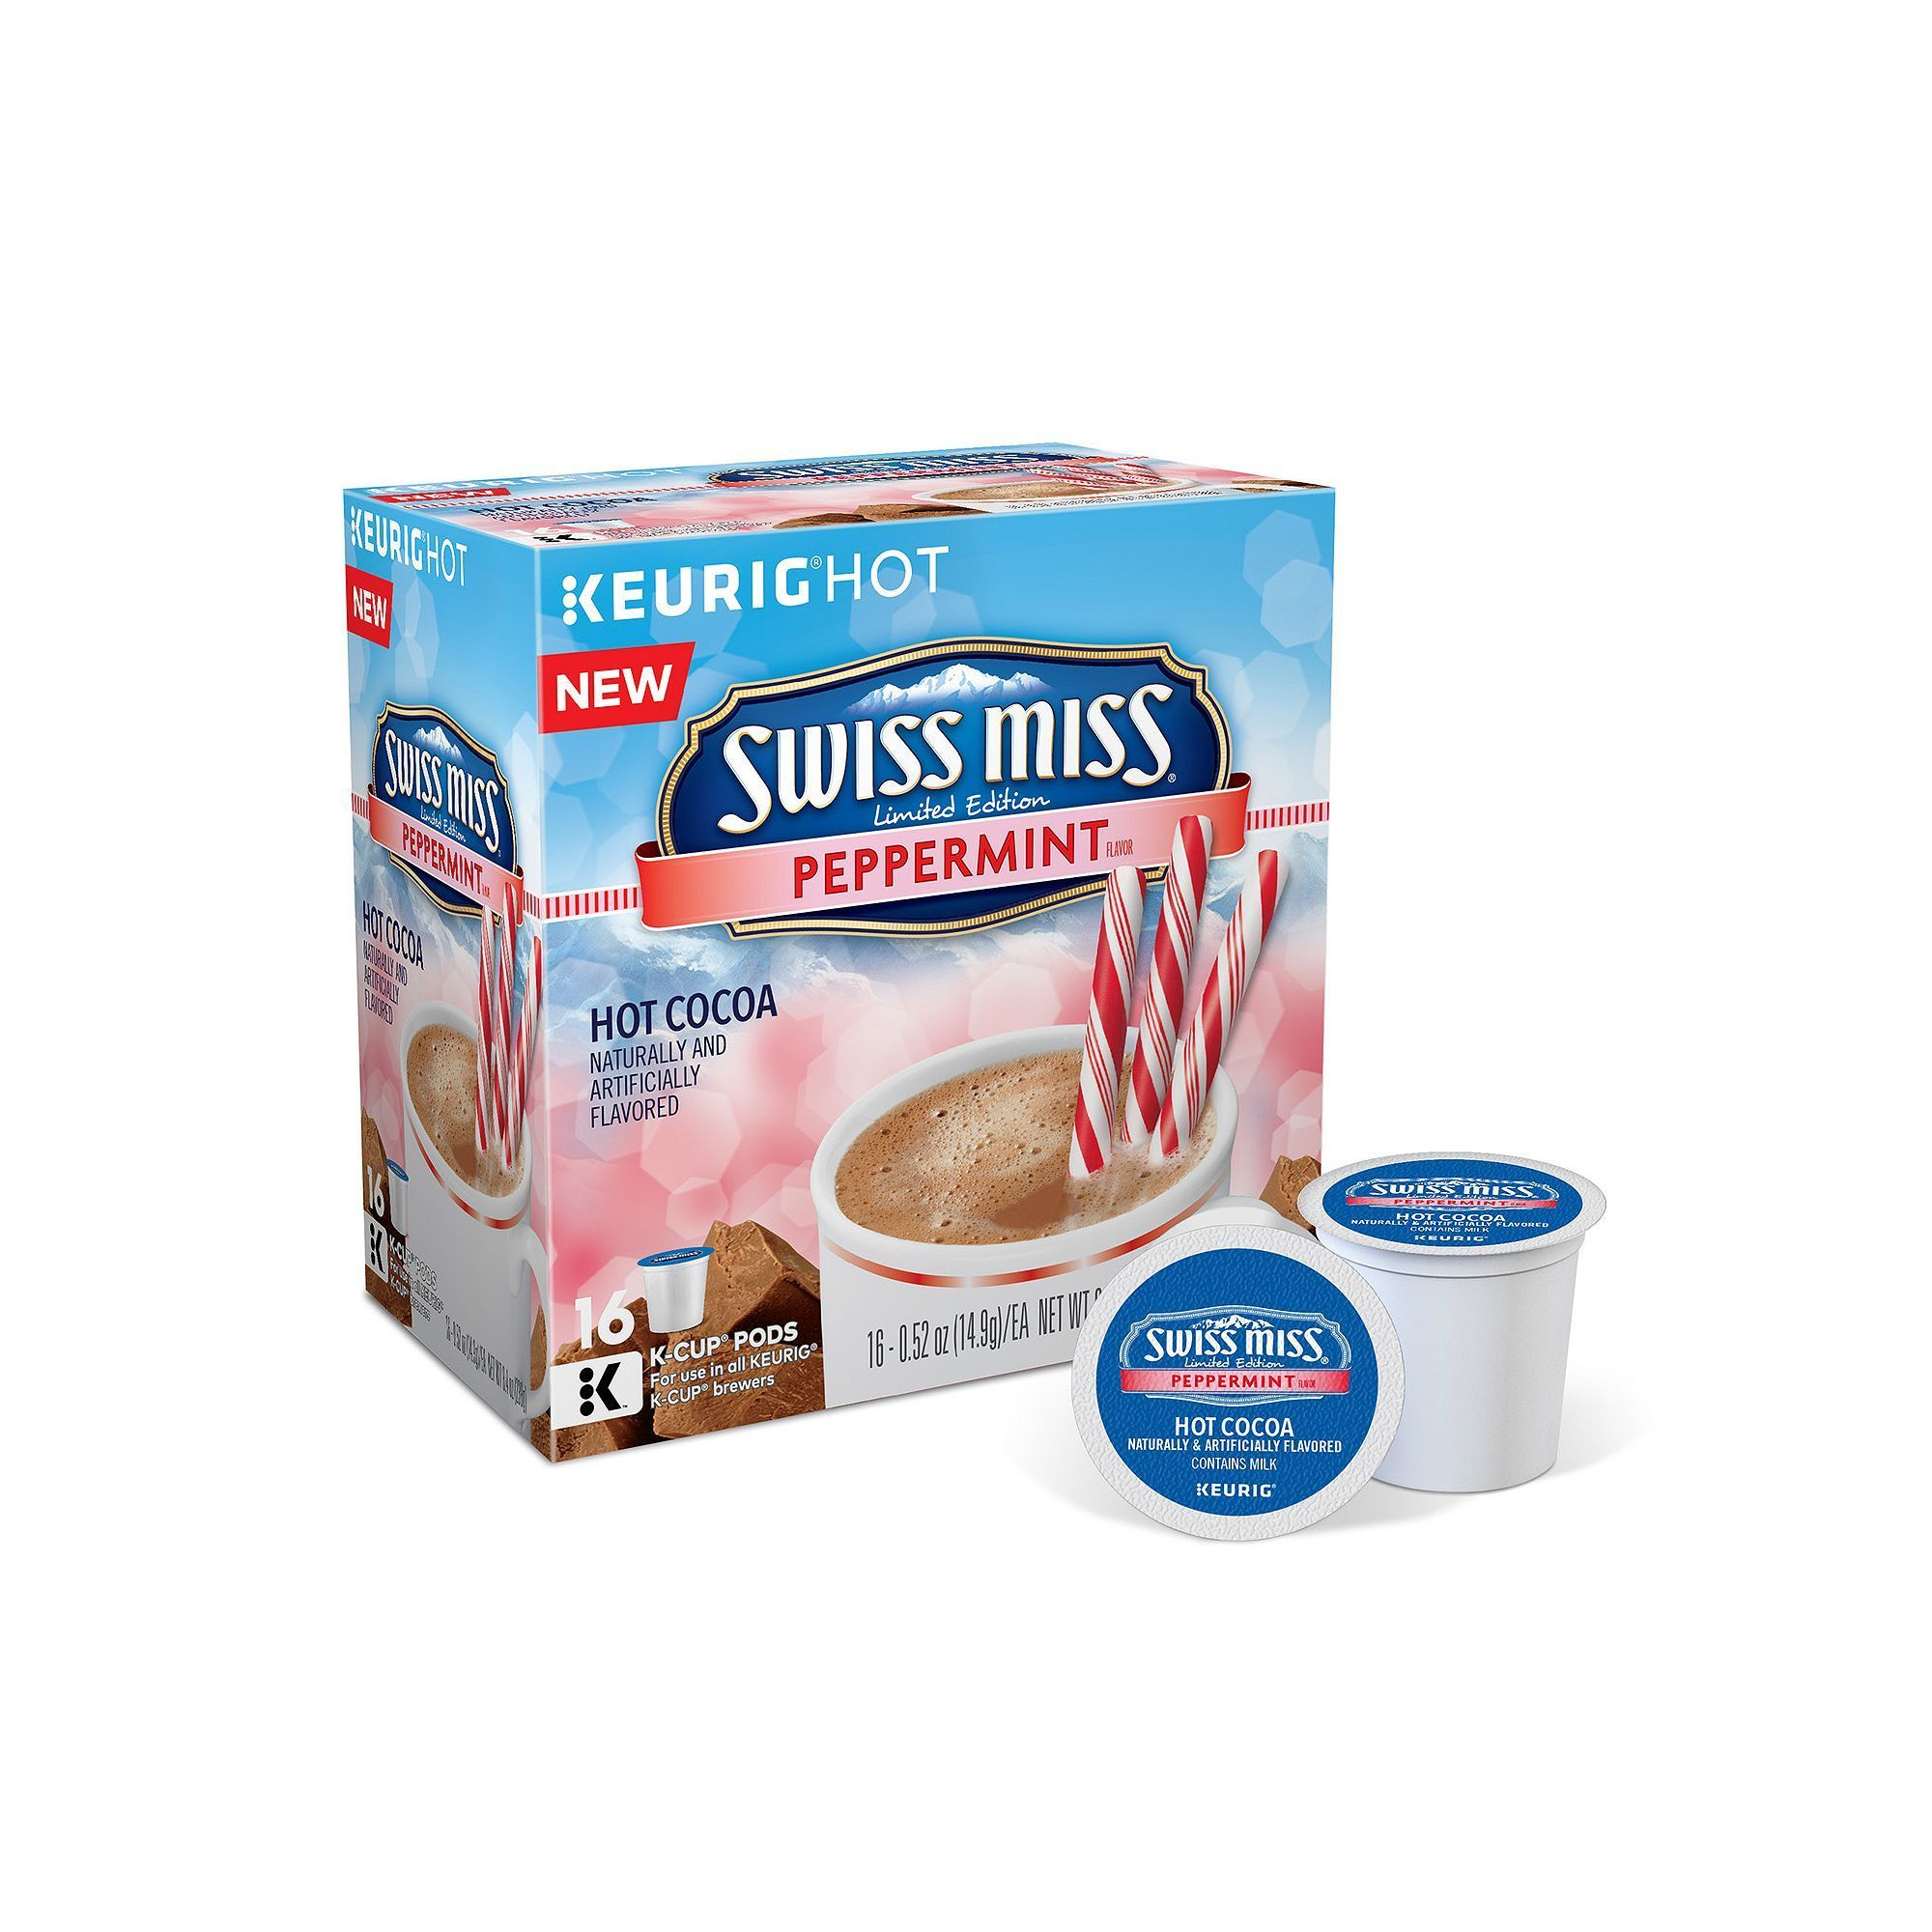 Keurig® KCup® Pod Swiss Miss Limited Edition Peppermint